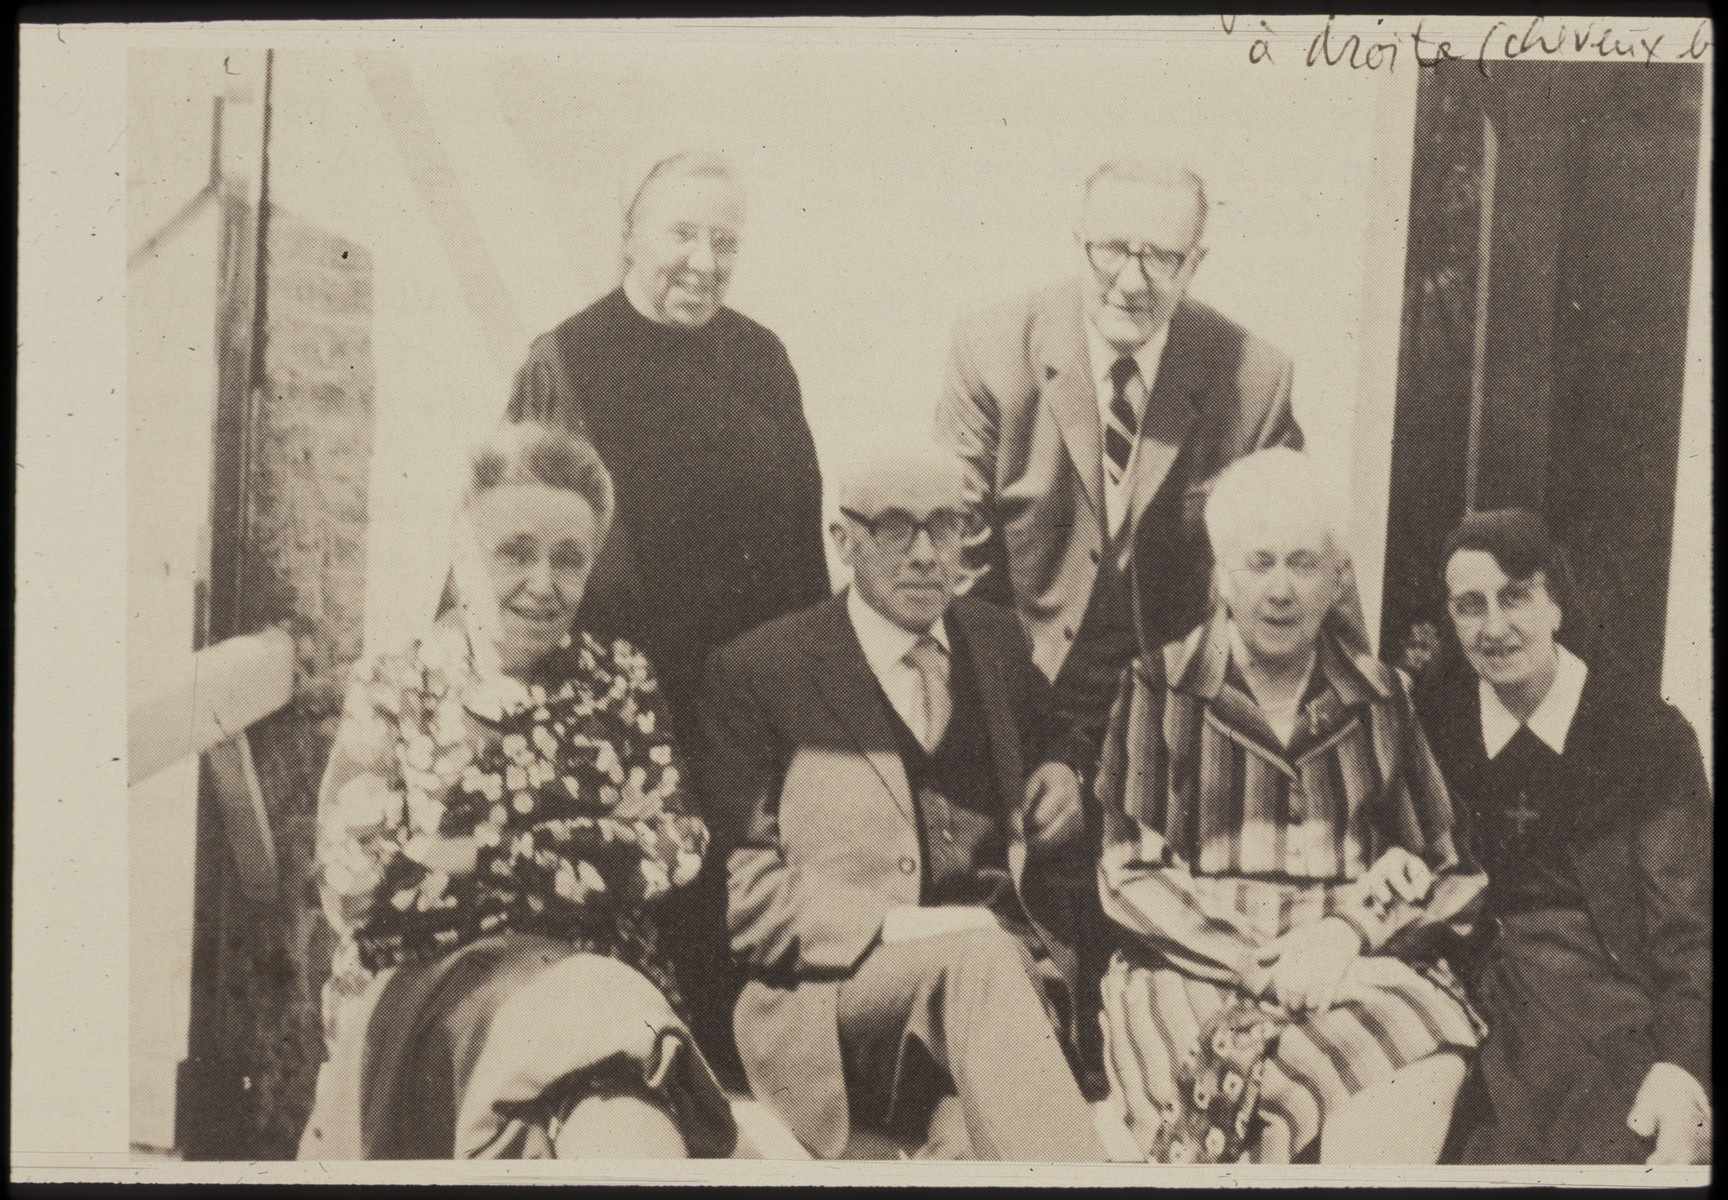 Father Bruno (Henri Reynders) poses for a group portrait with sisters and brother after the war.  Pictured are (seated, from left): Germaine, Father Bruno, Margurite, and Betsy;  (standing) Marie-Louise and Jean.